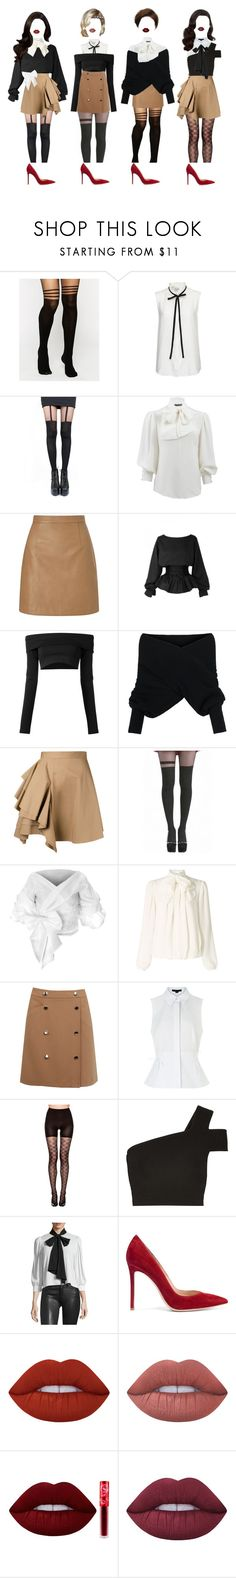 """""""- retro concept"""" by xxeucliffexx ❤ liked on Polyvore featuring ASOS, Frame, Pretty Polly, Alexander McQueen, Lipsy, Puma, WithChic, MSGM, Pamela Mann and Somerset by Alice Temperley"""